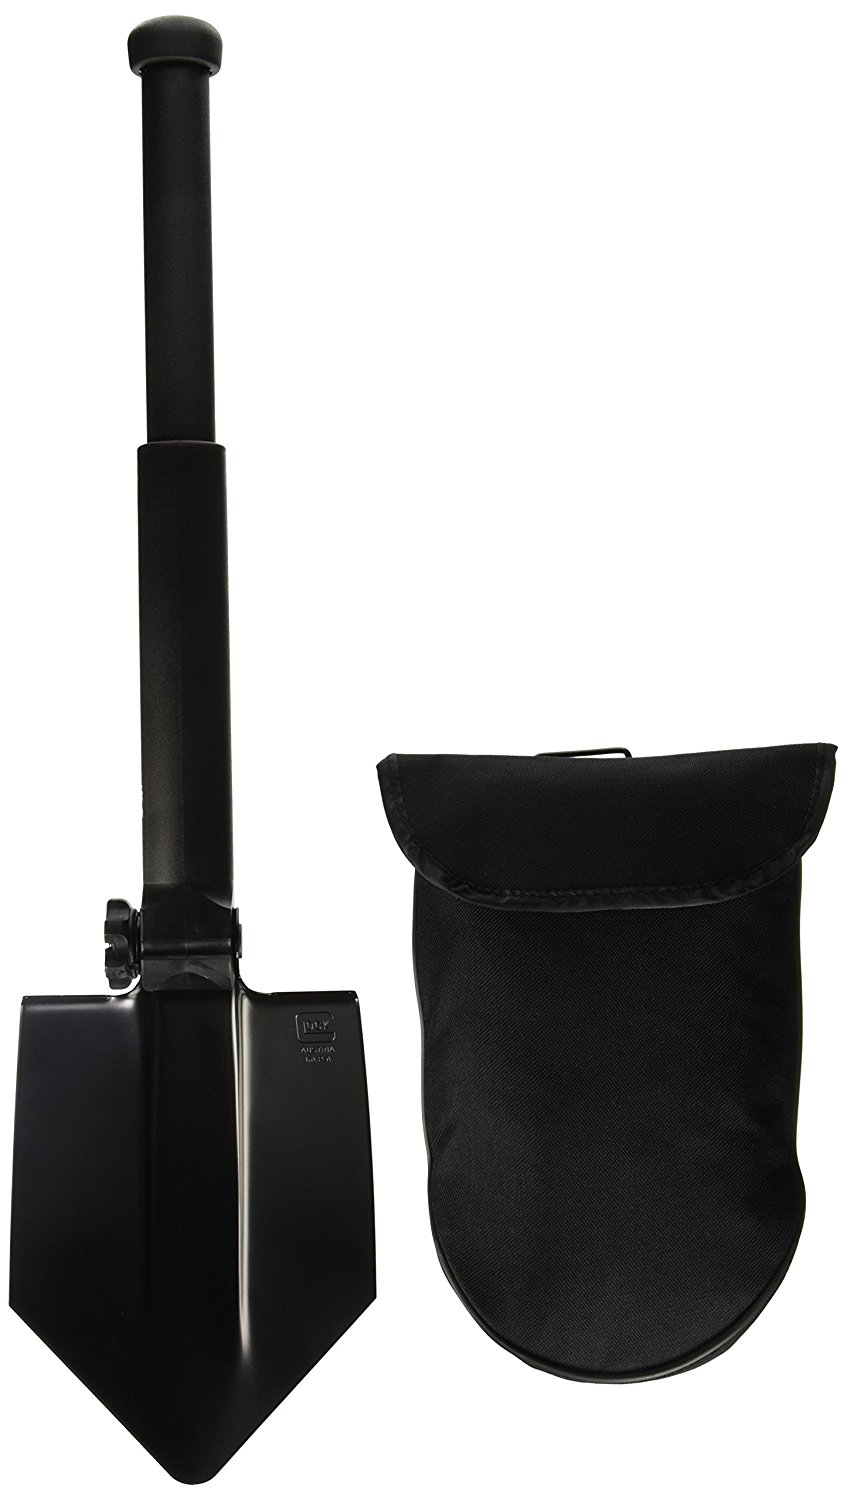 Glock Entrenching Tool with Saw and Pouch by